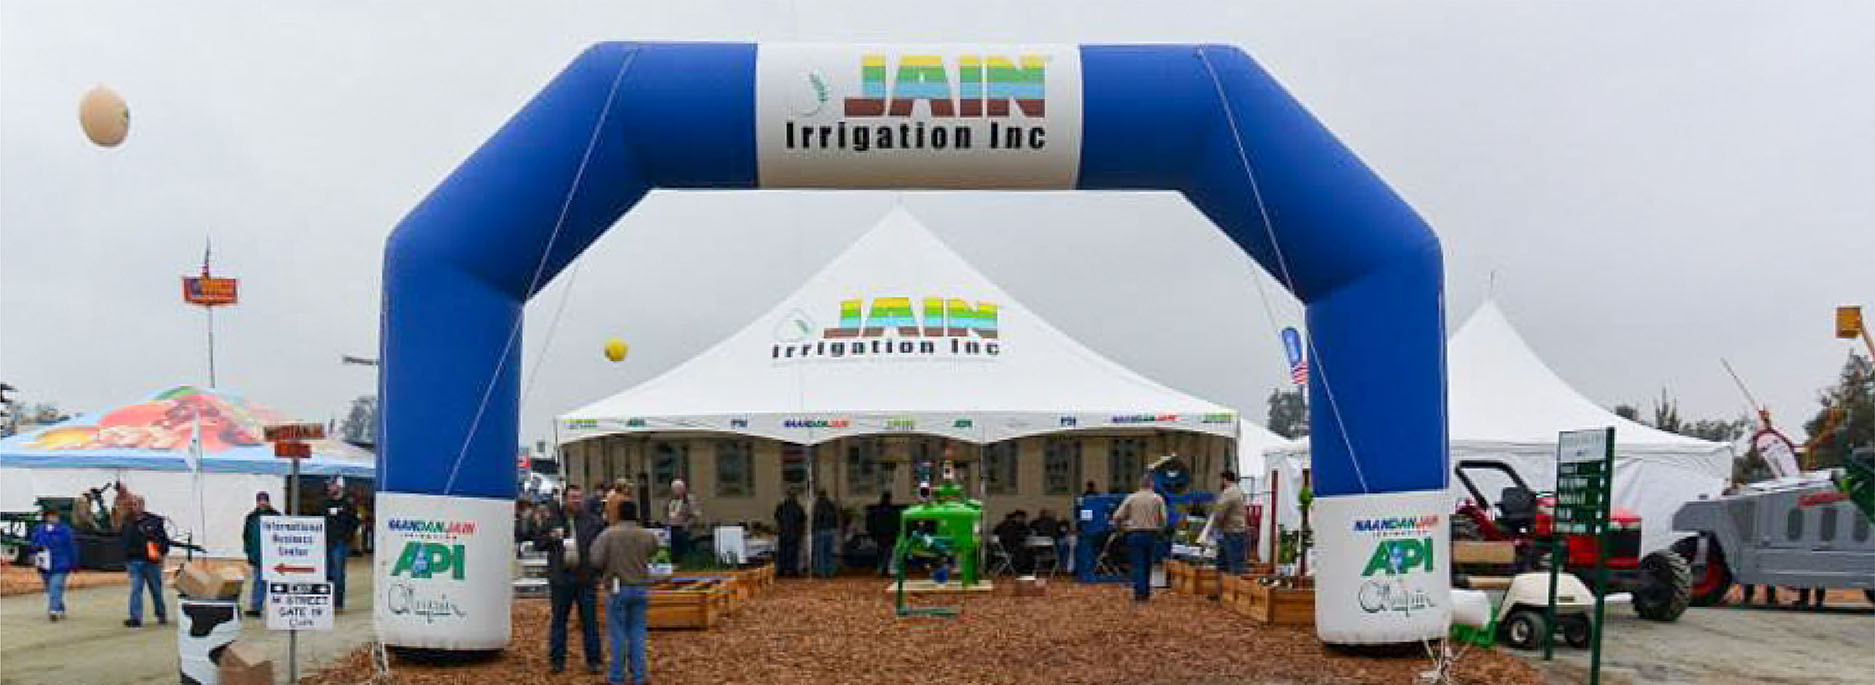 Jain irrigation blue inflatable arch